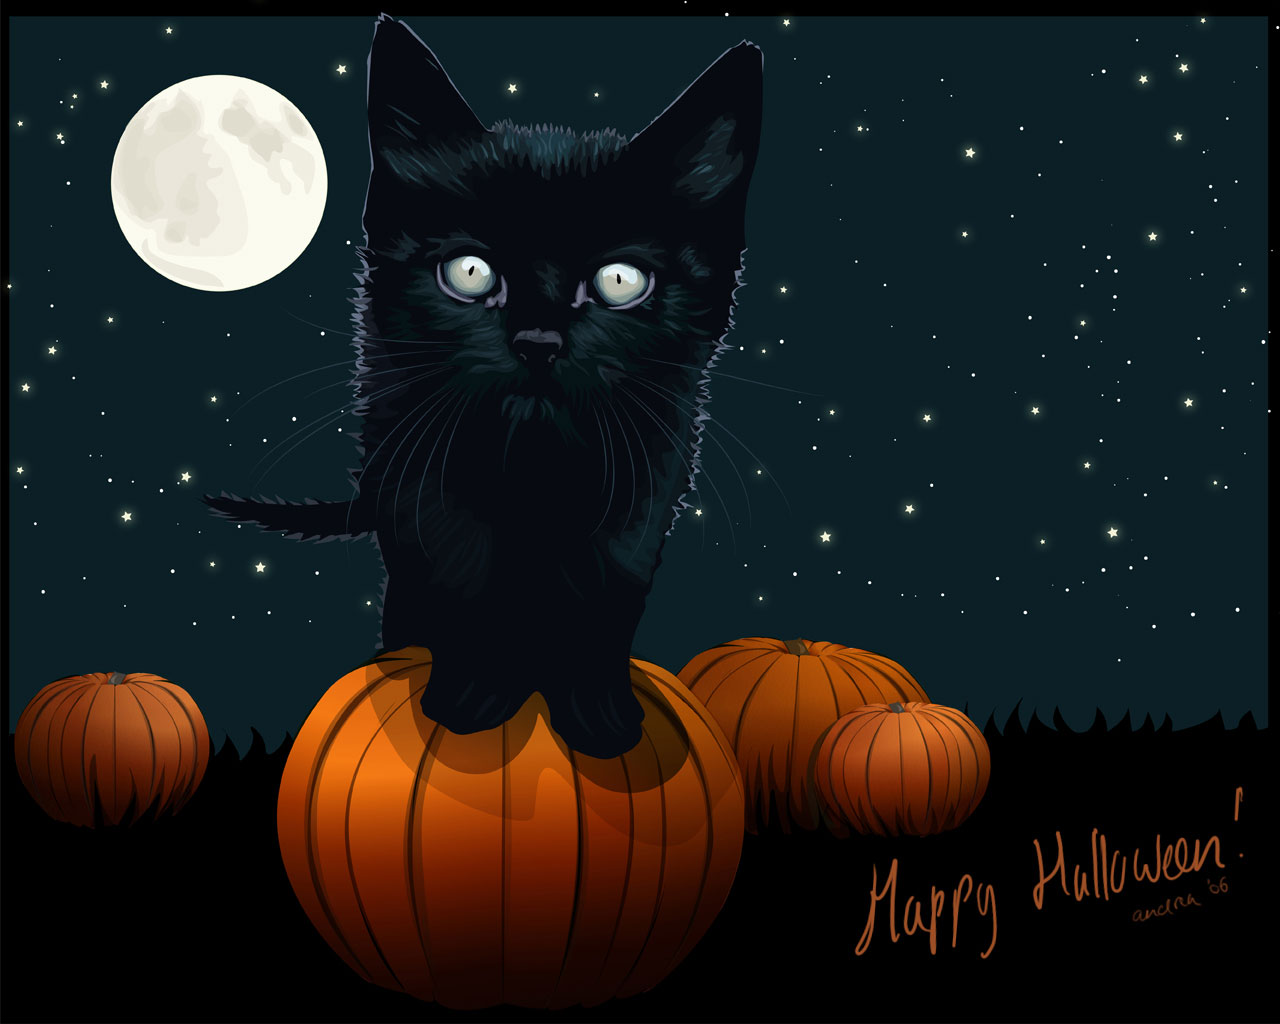 Top 10 HD Halloween 2014 Wallpapers for PC AxeeTech 1280x1024